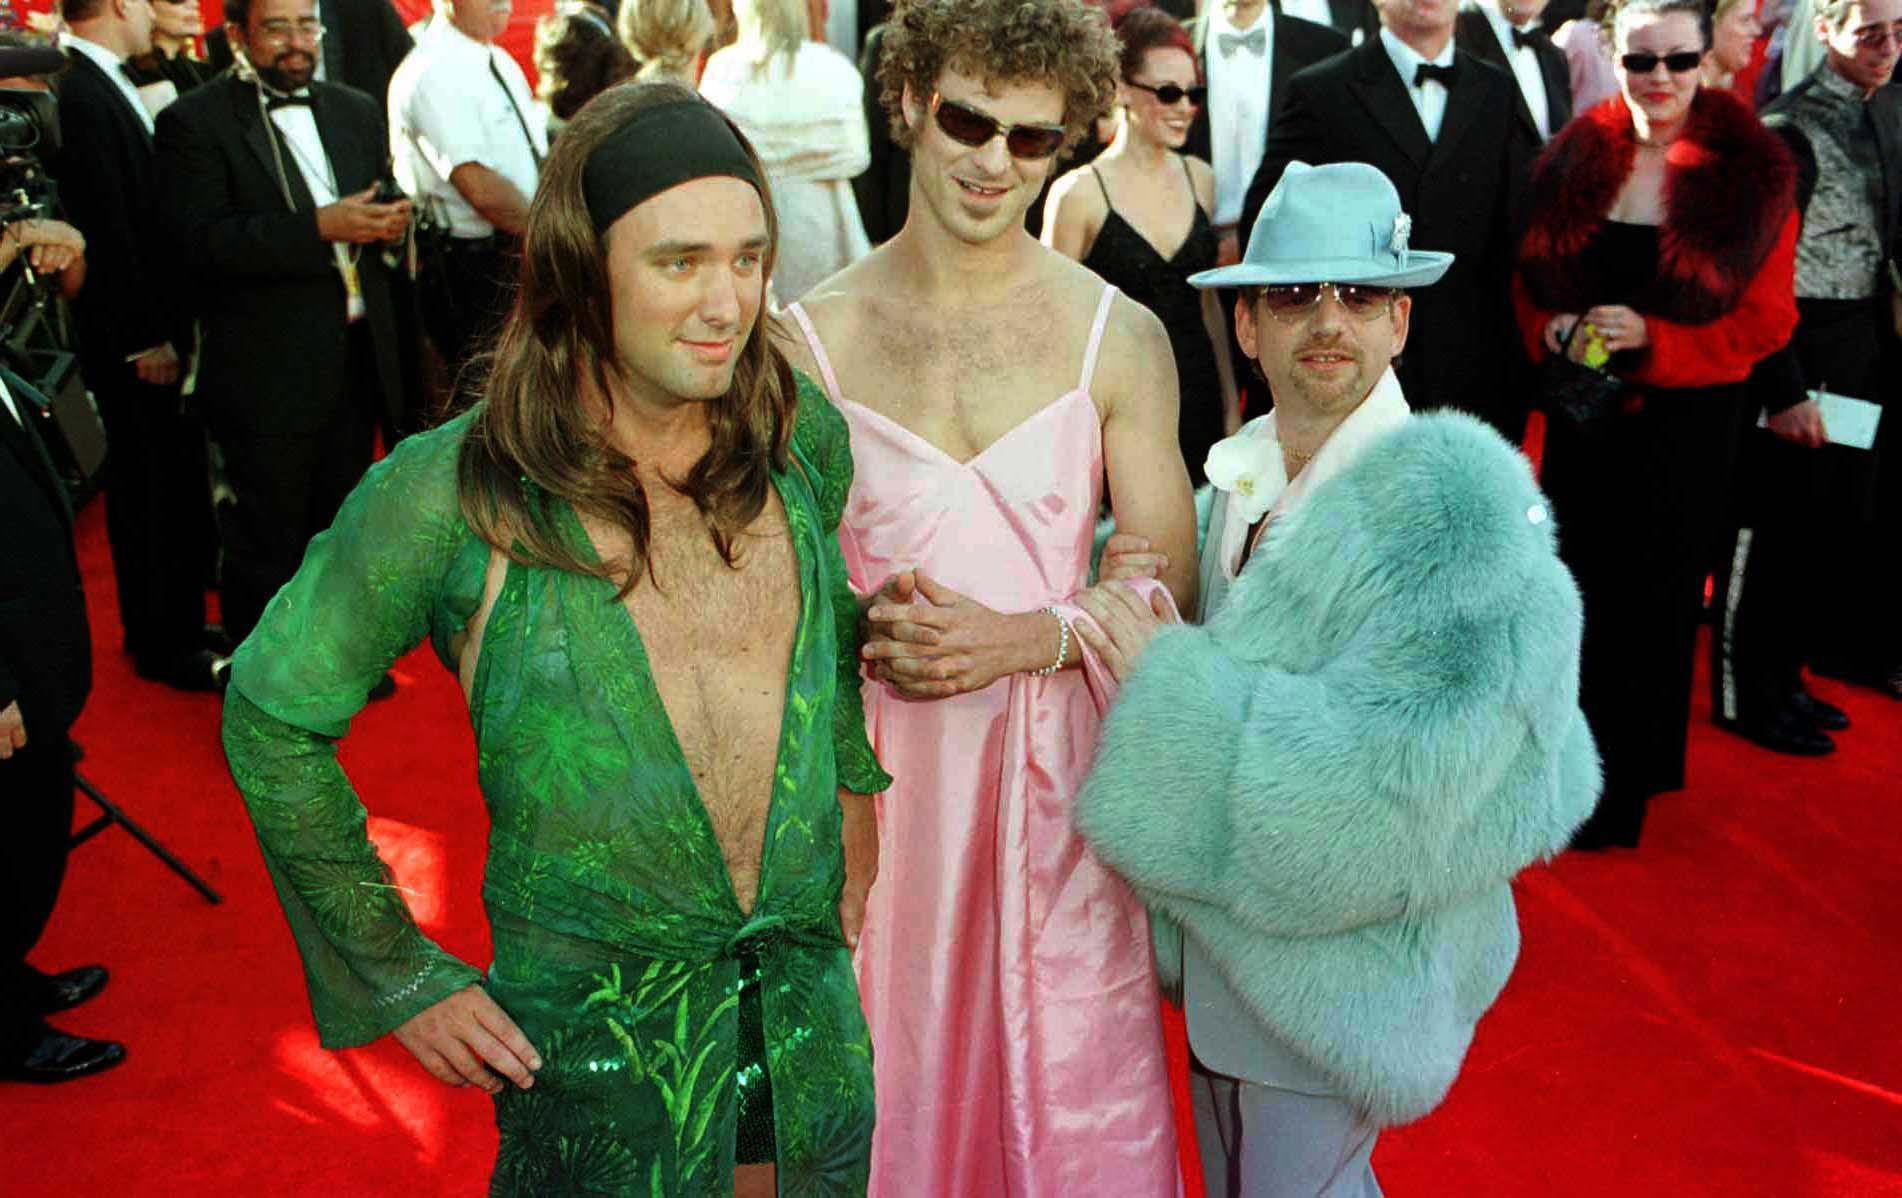 Marc Shalman (right) with South Park creators, Matt Stone (centre) and Trey Parker